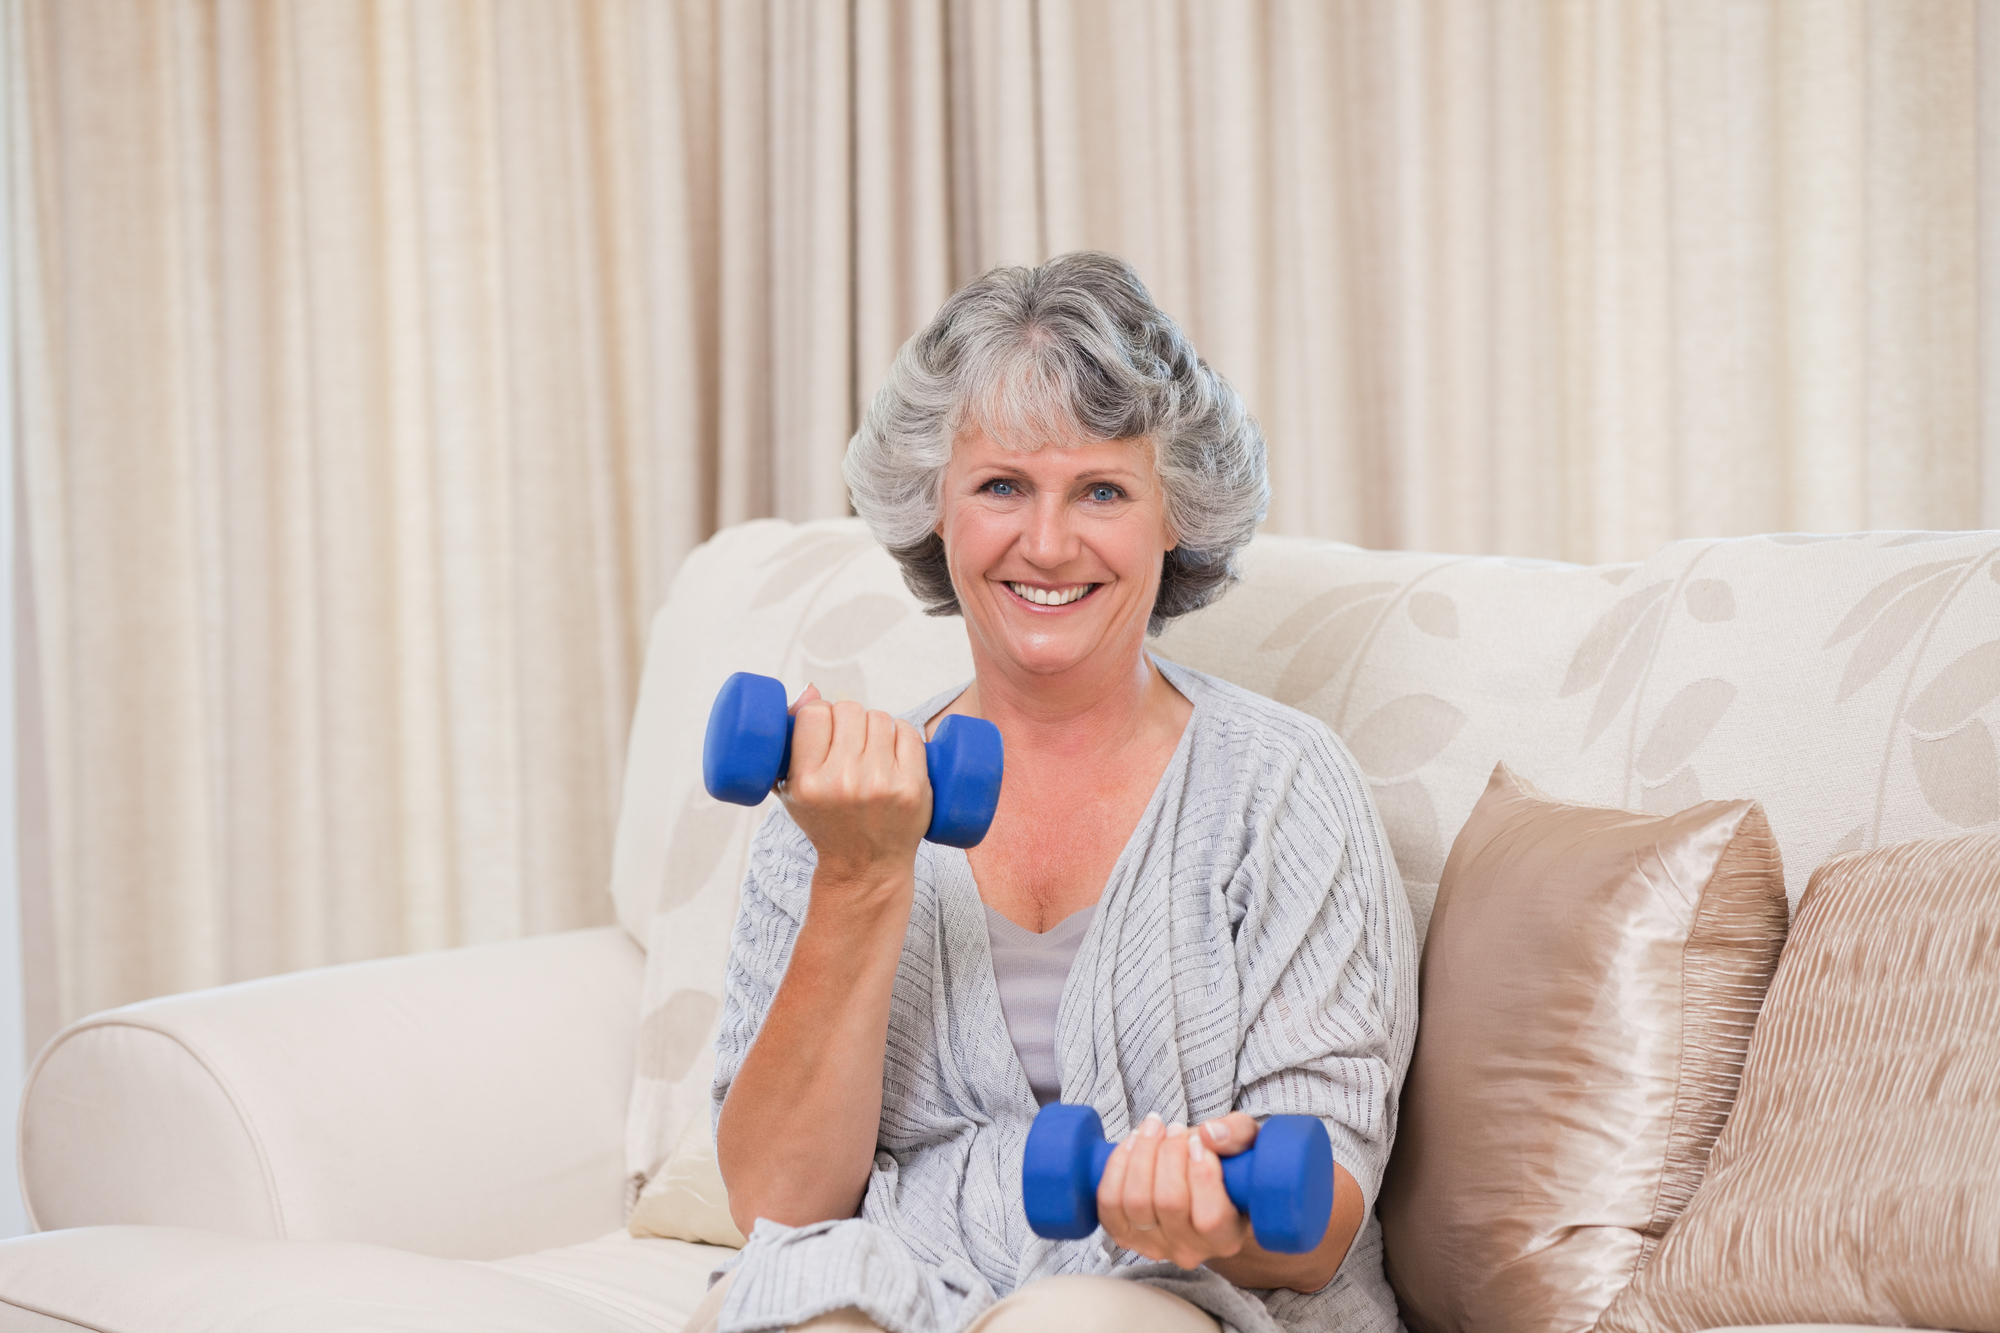 Exercise in assisted living